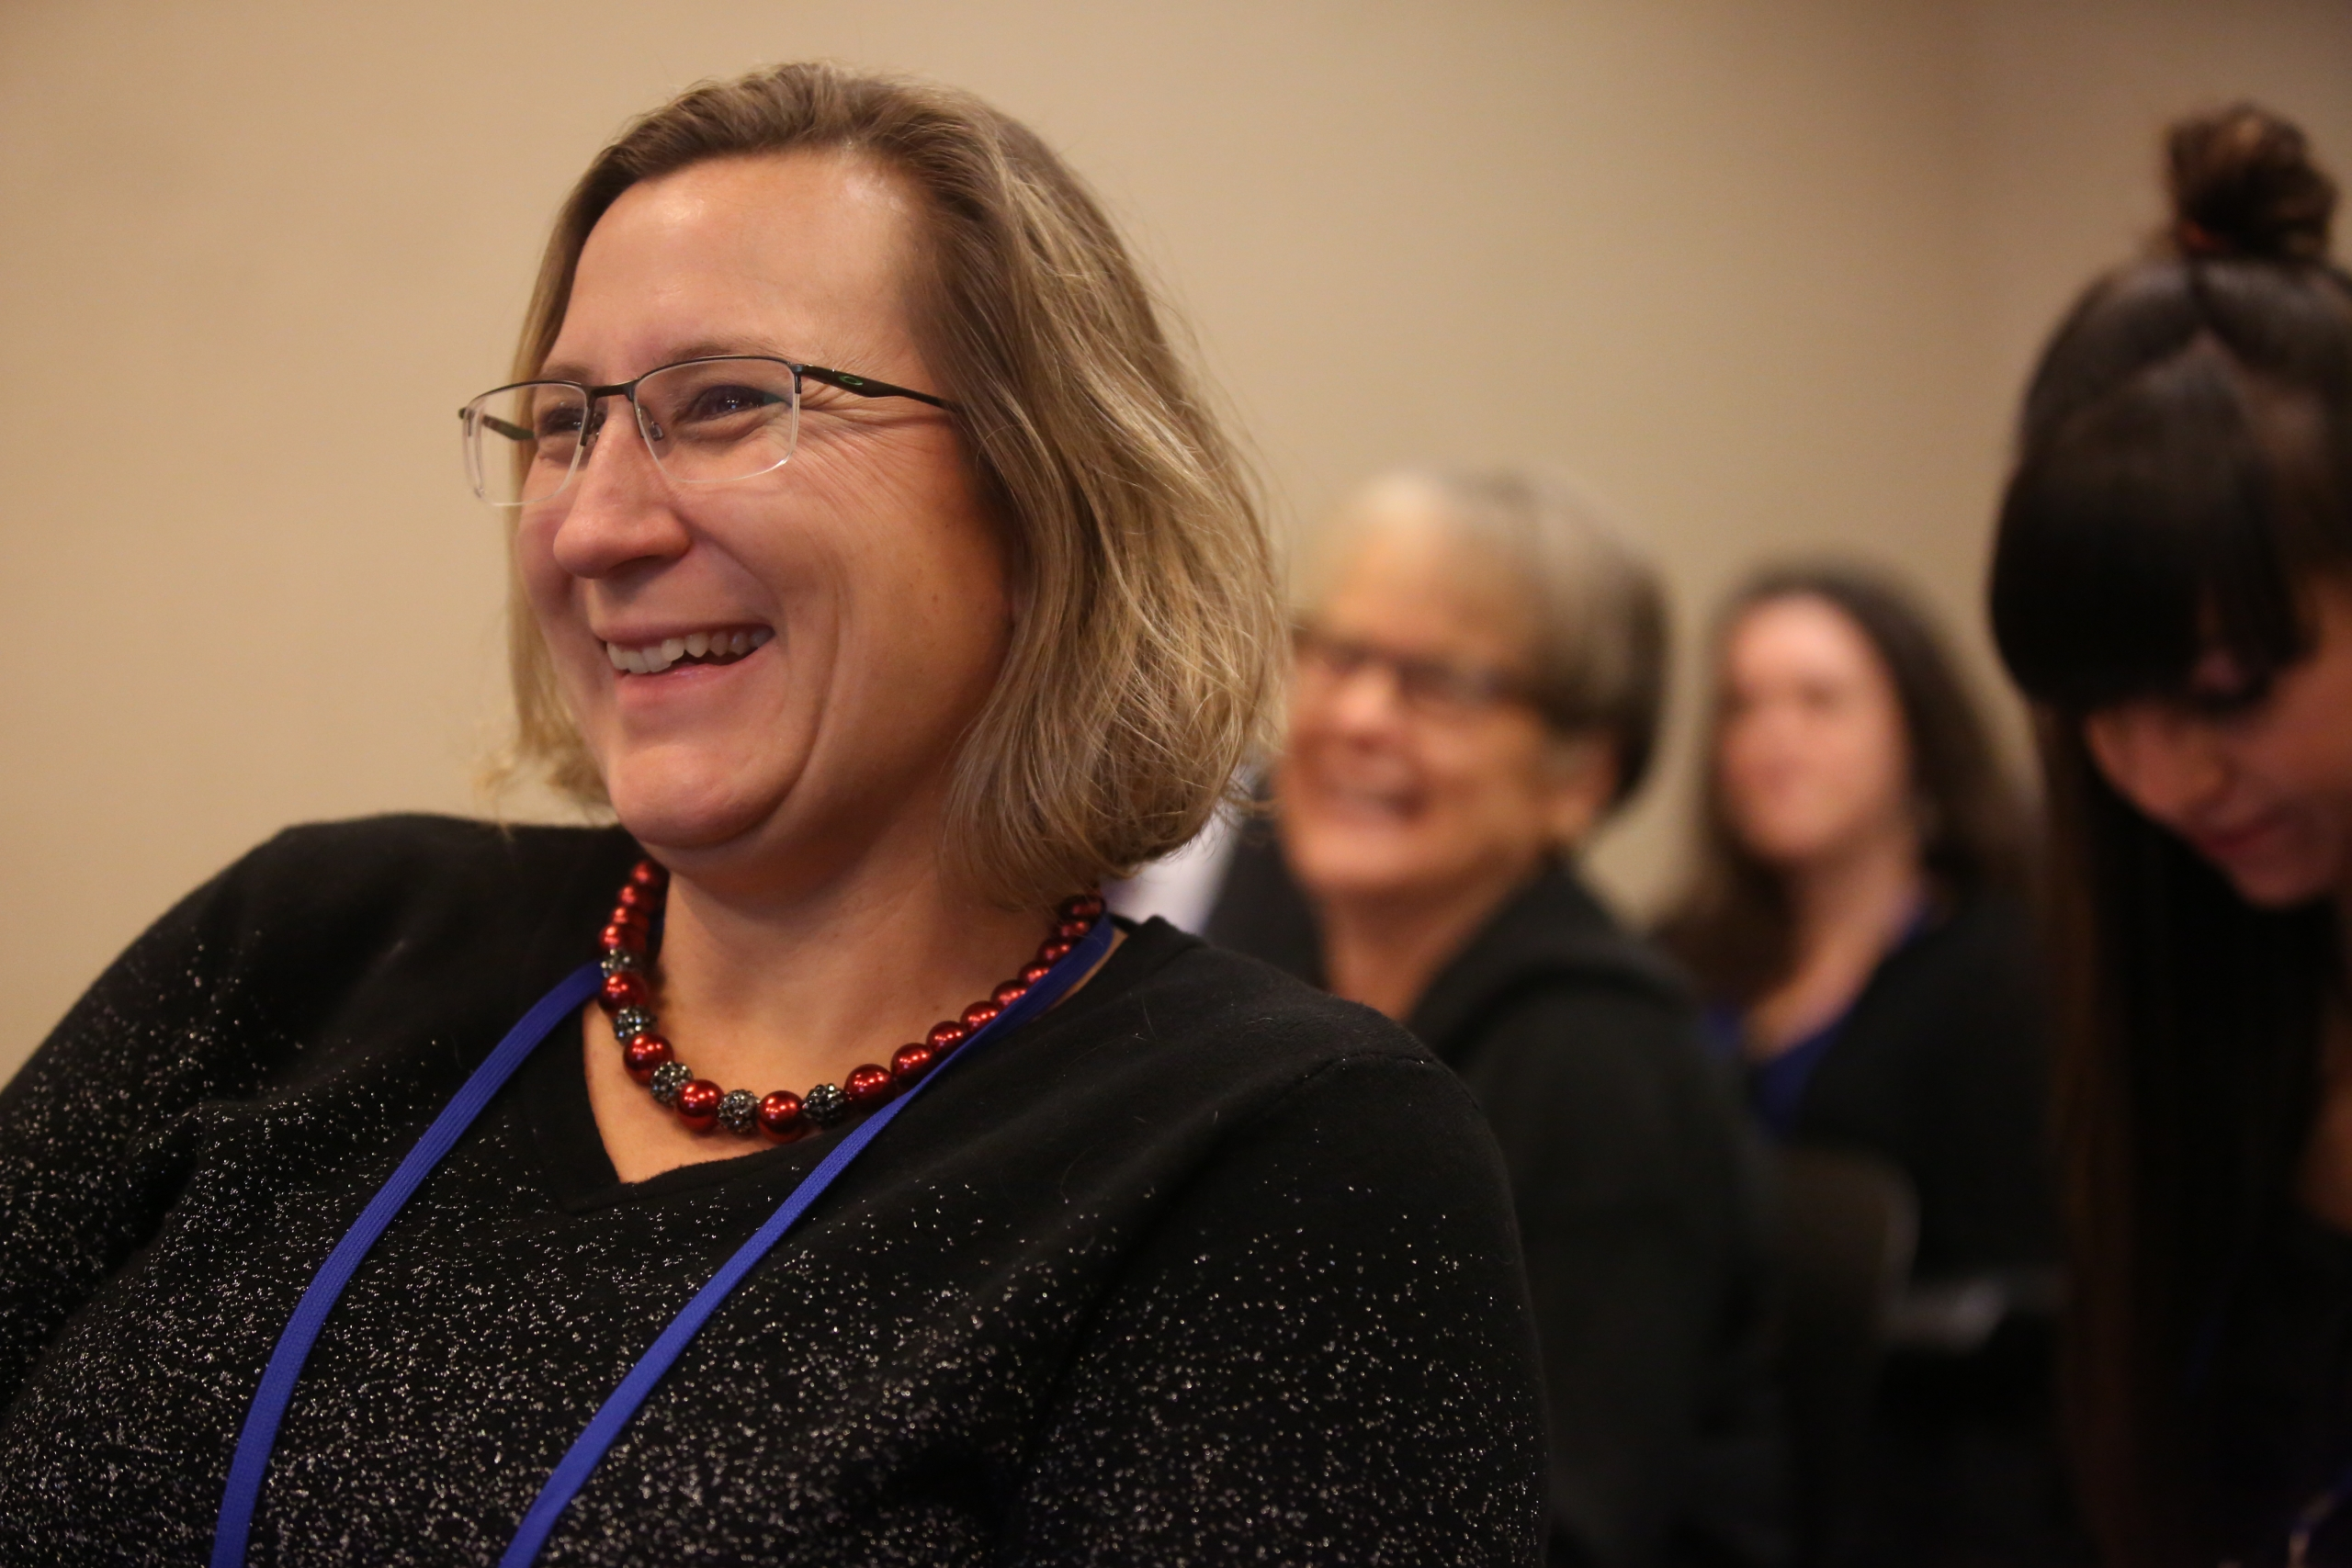 A woman smiles during a breakout session